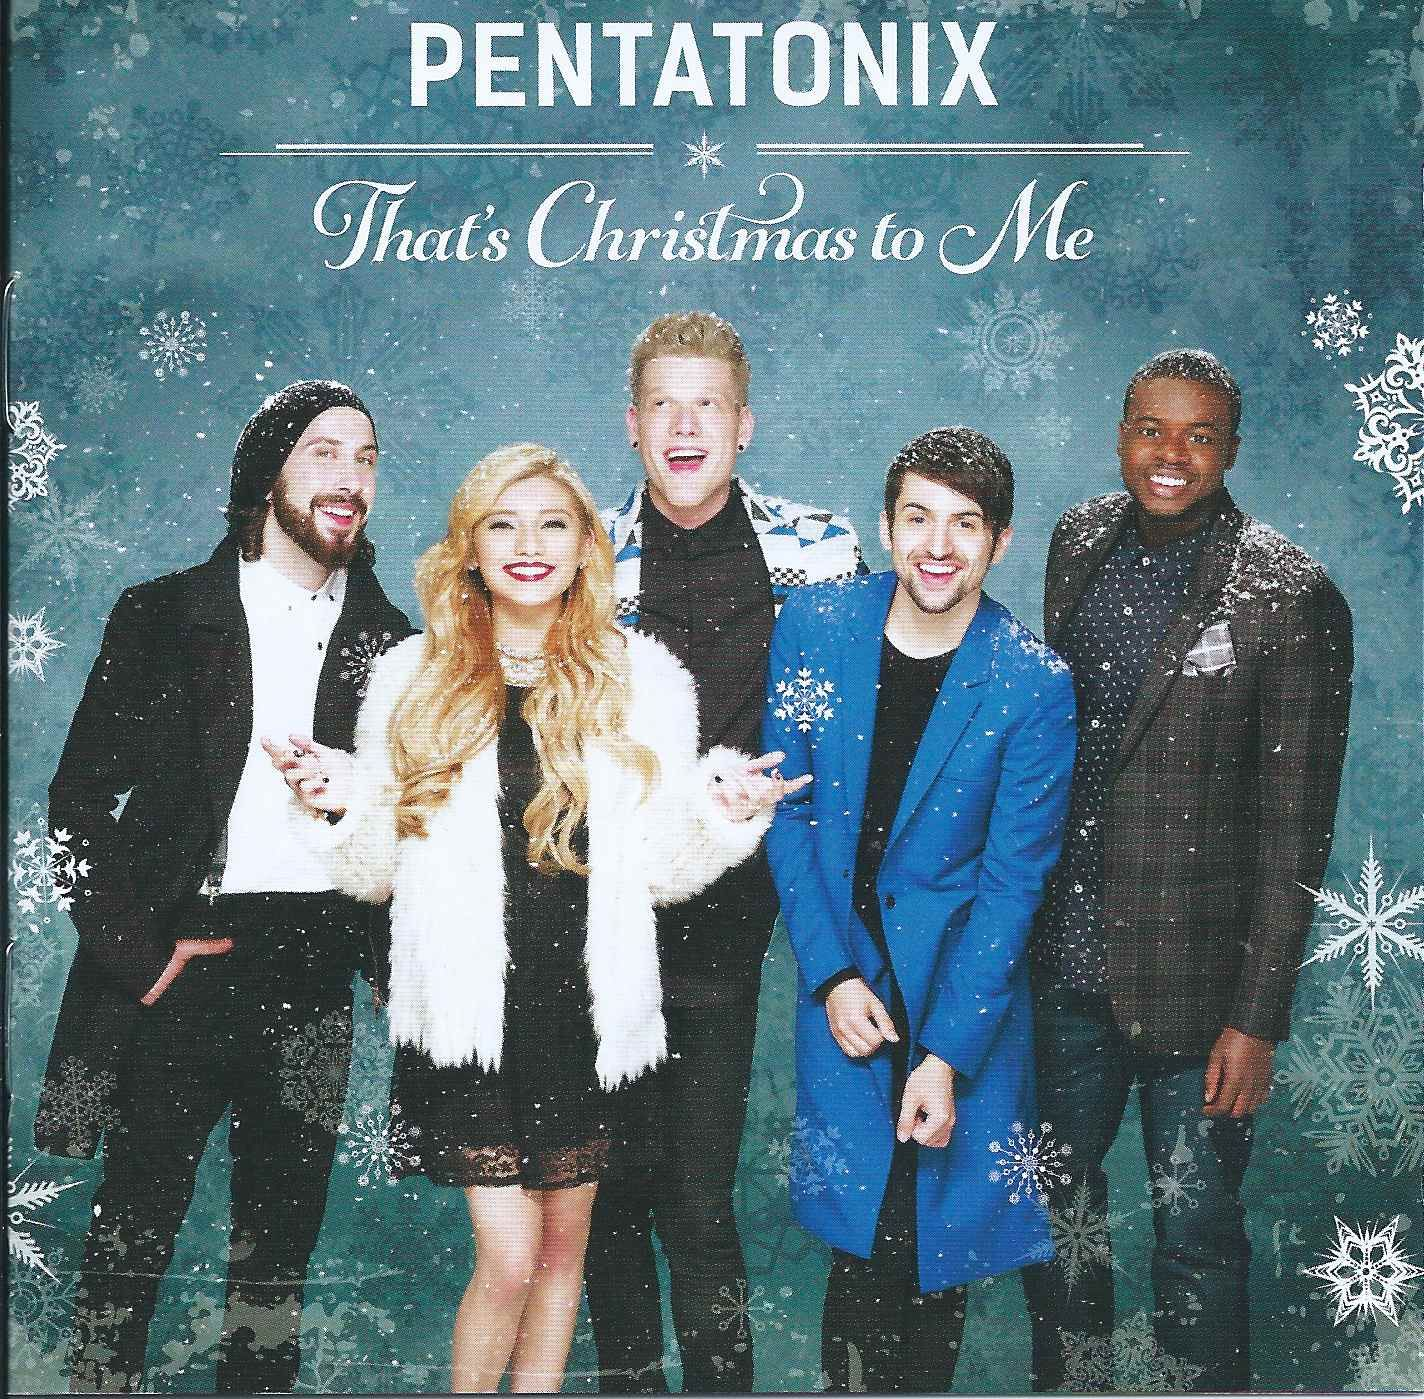 Pentatonix - That's Christmas To Me album cover